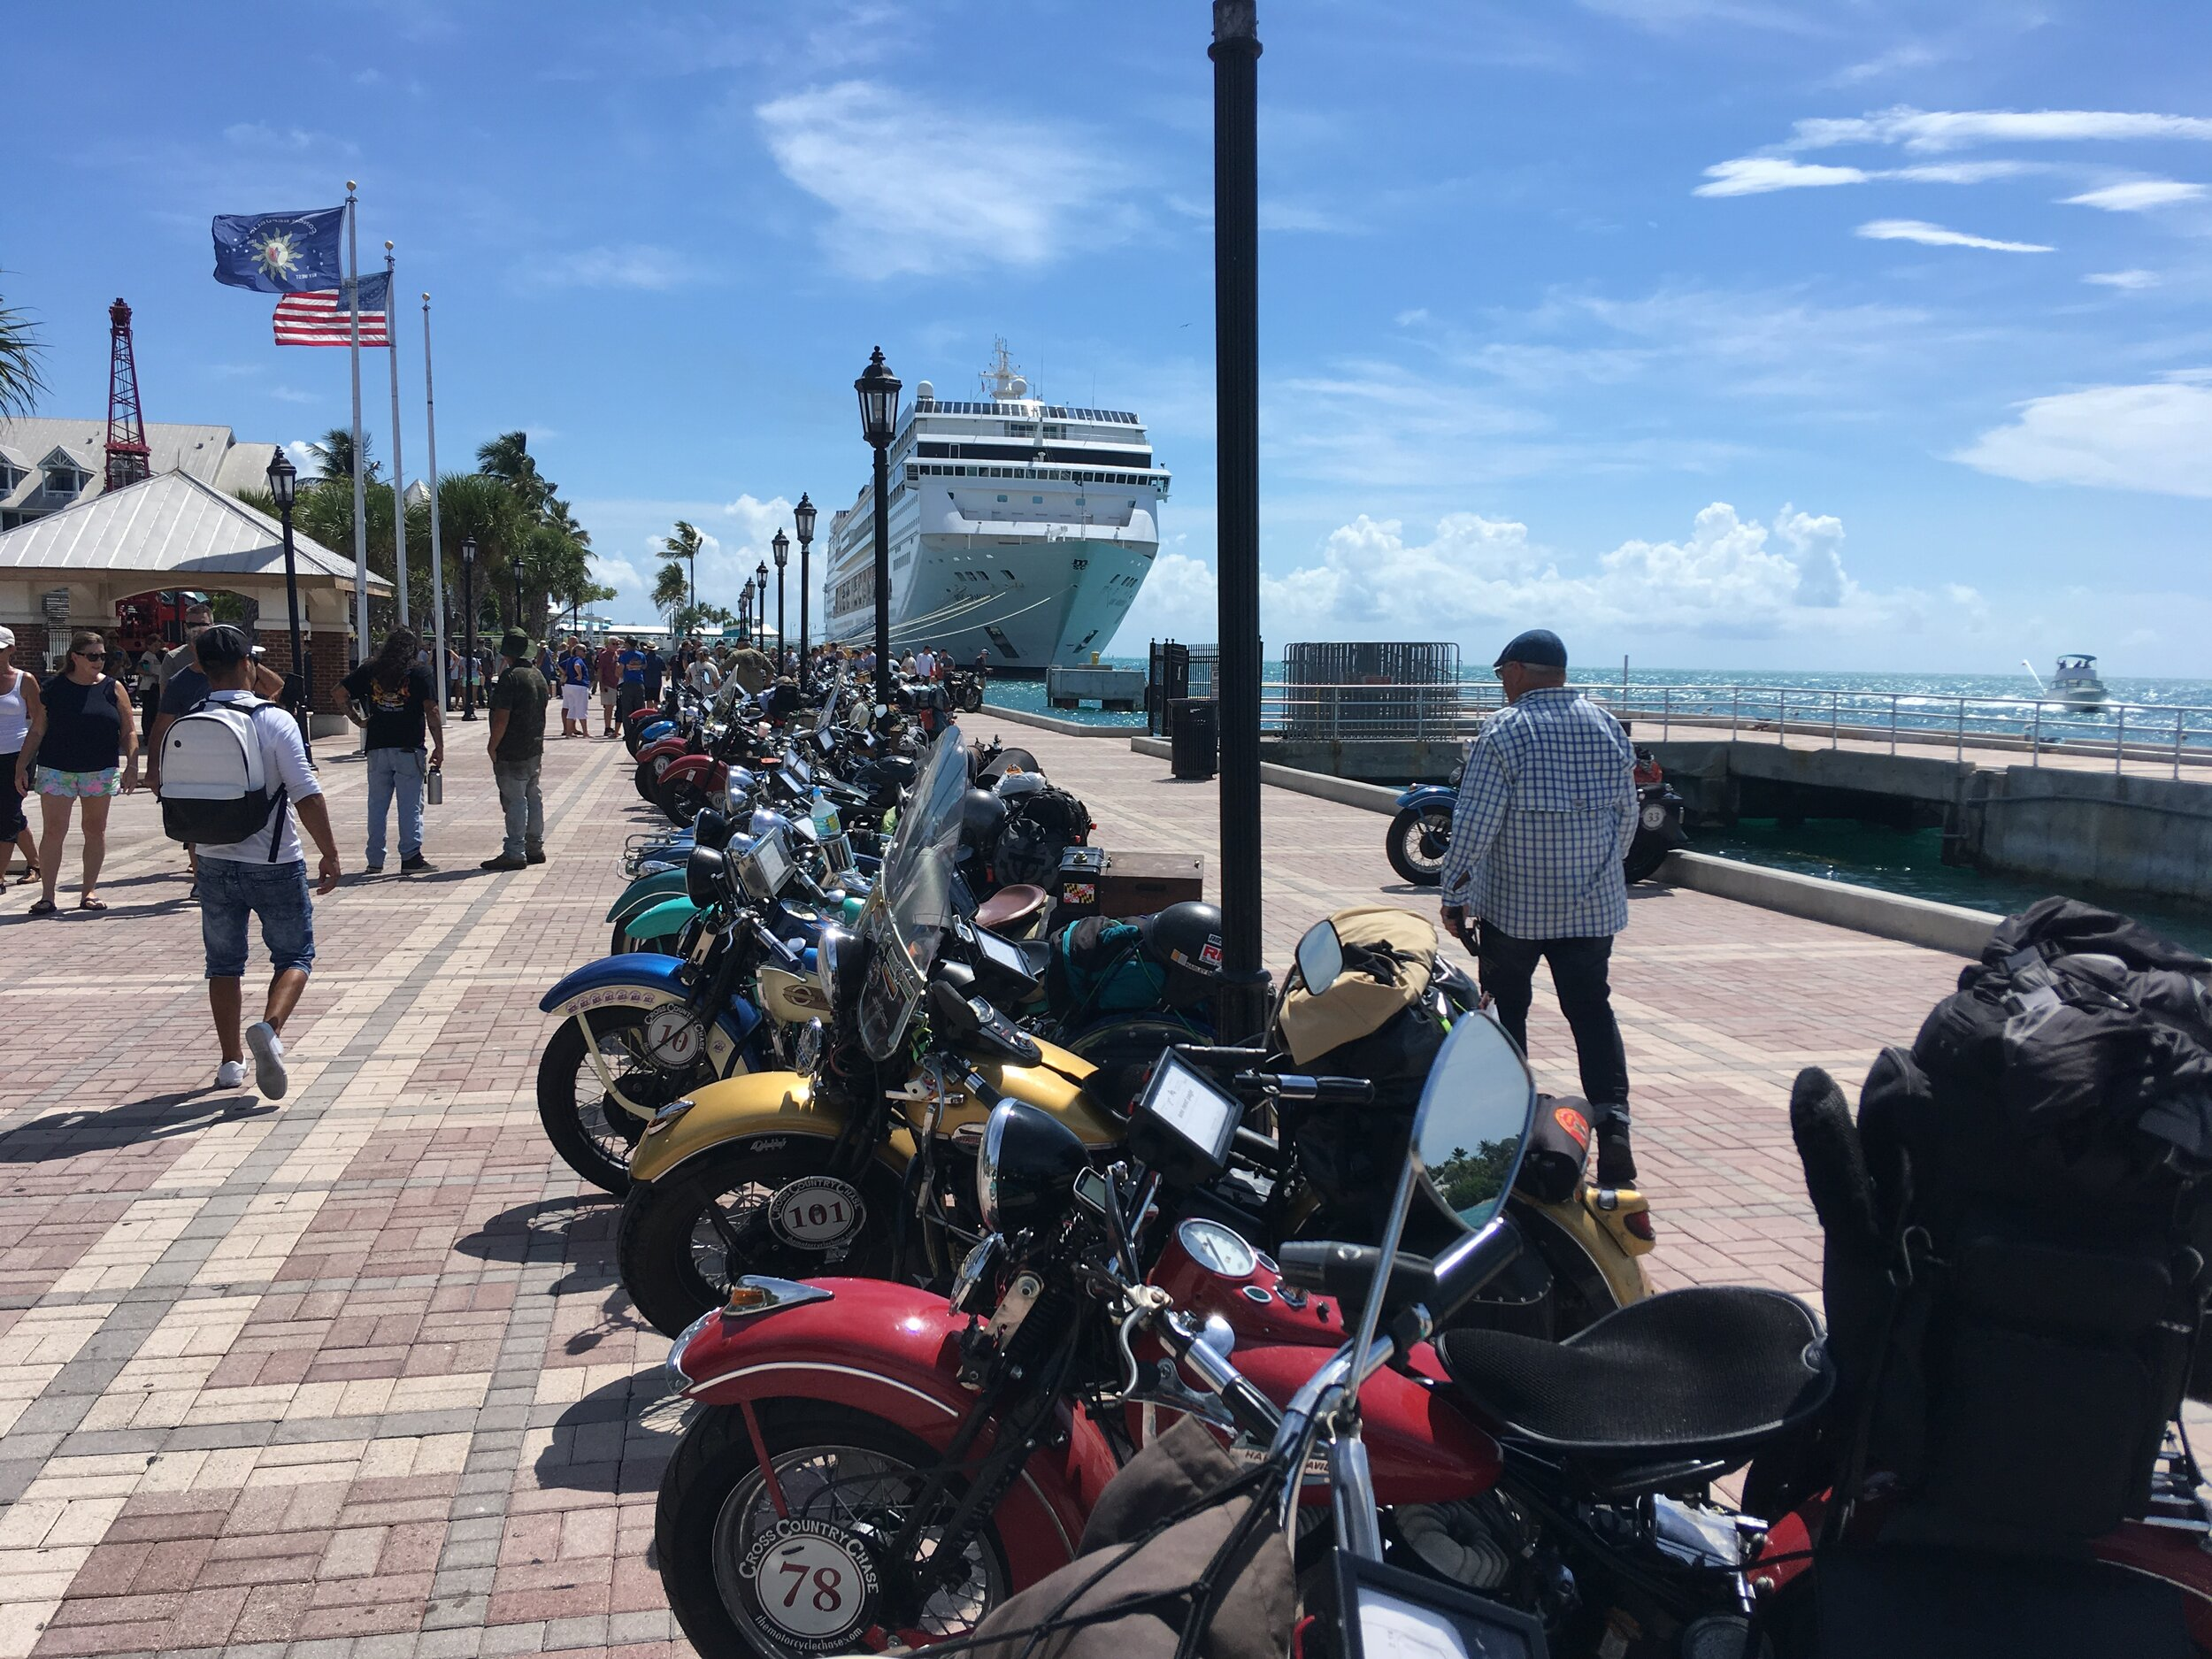 Bikes lined up in Mallory Square